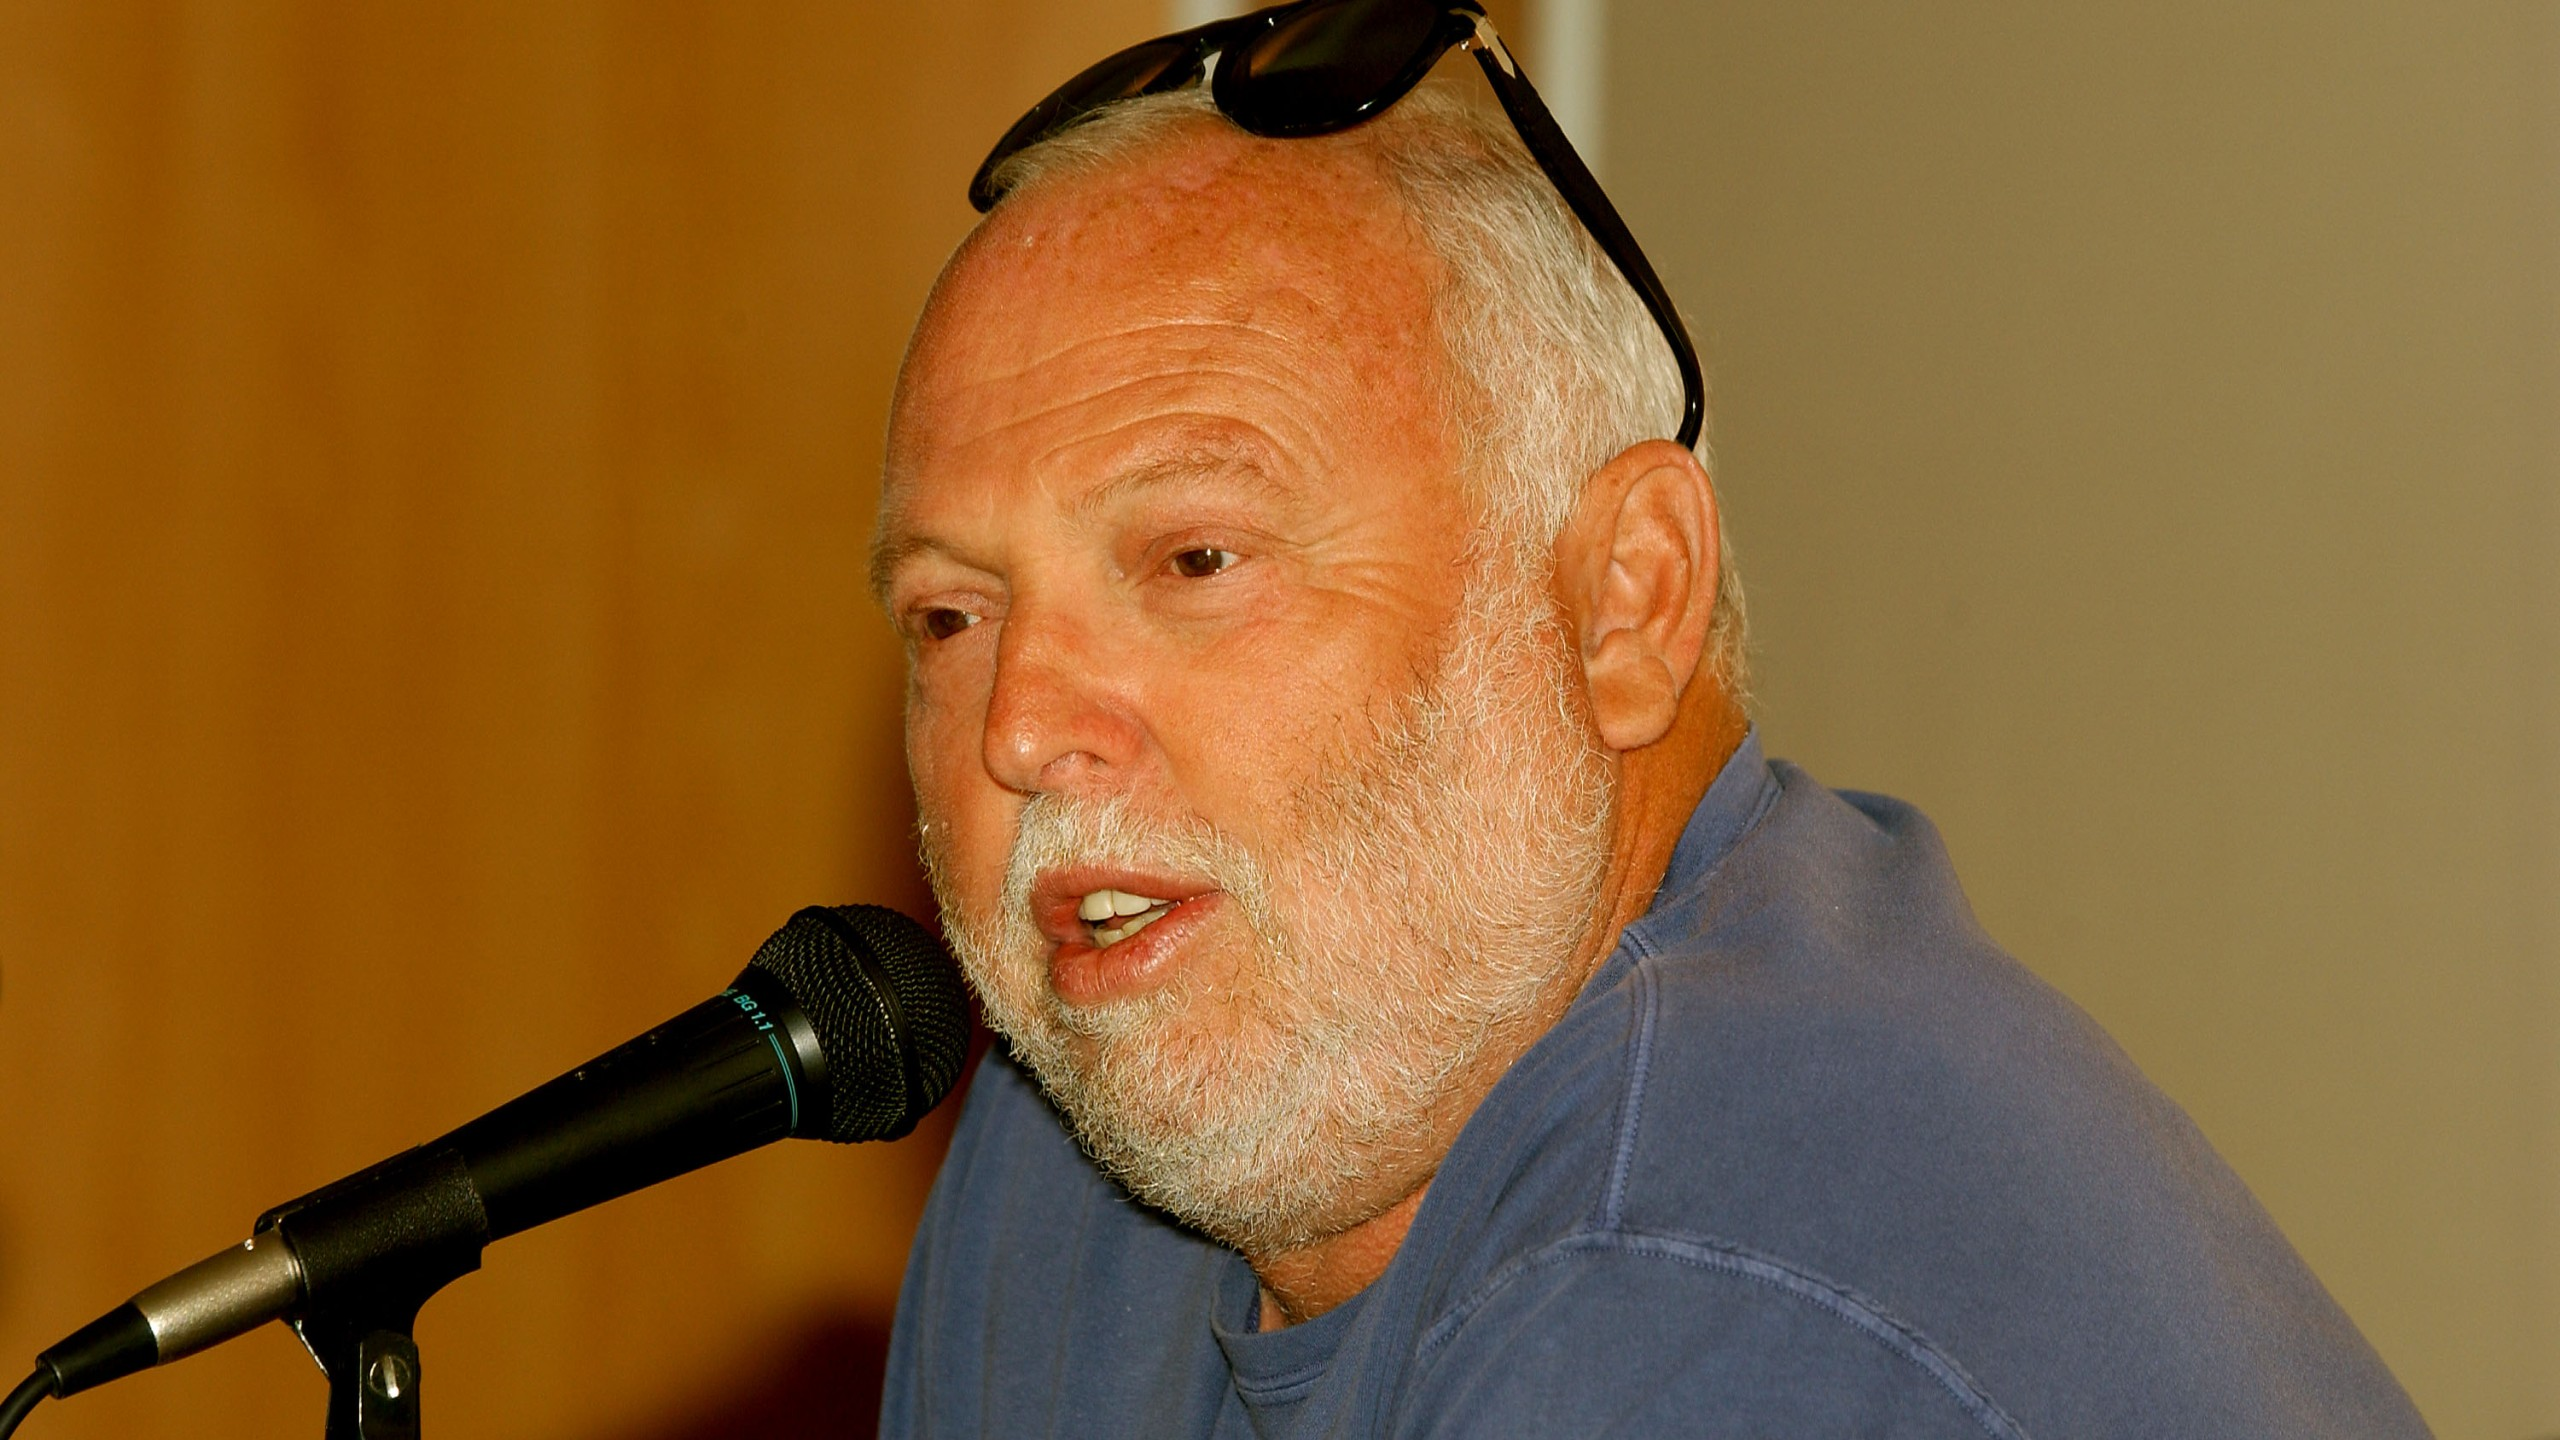 Andy Vajna speaks during the Variety Cannes Conference Series on May 17, 2003, in Cannes, France. (Credit: Frank Micelotta/Getty Images)